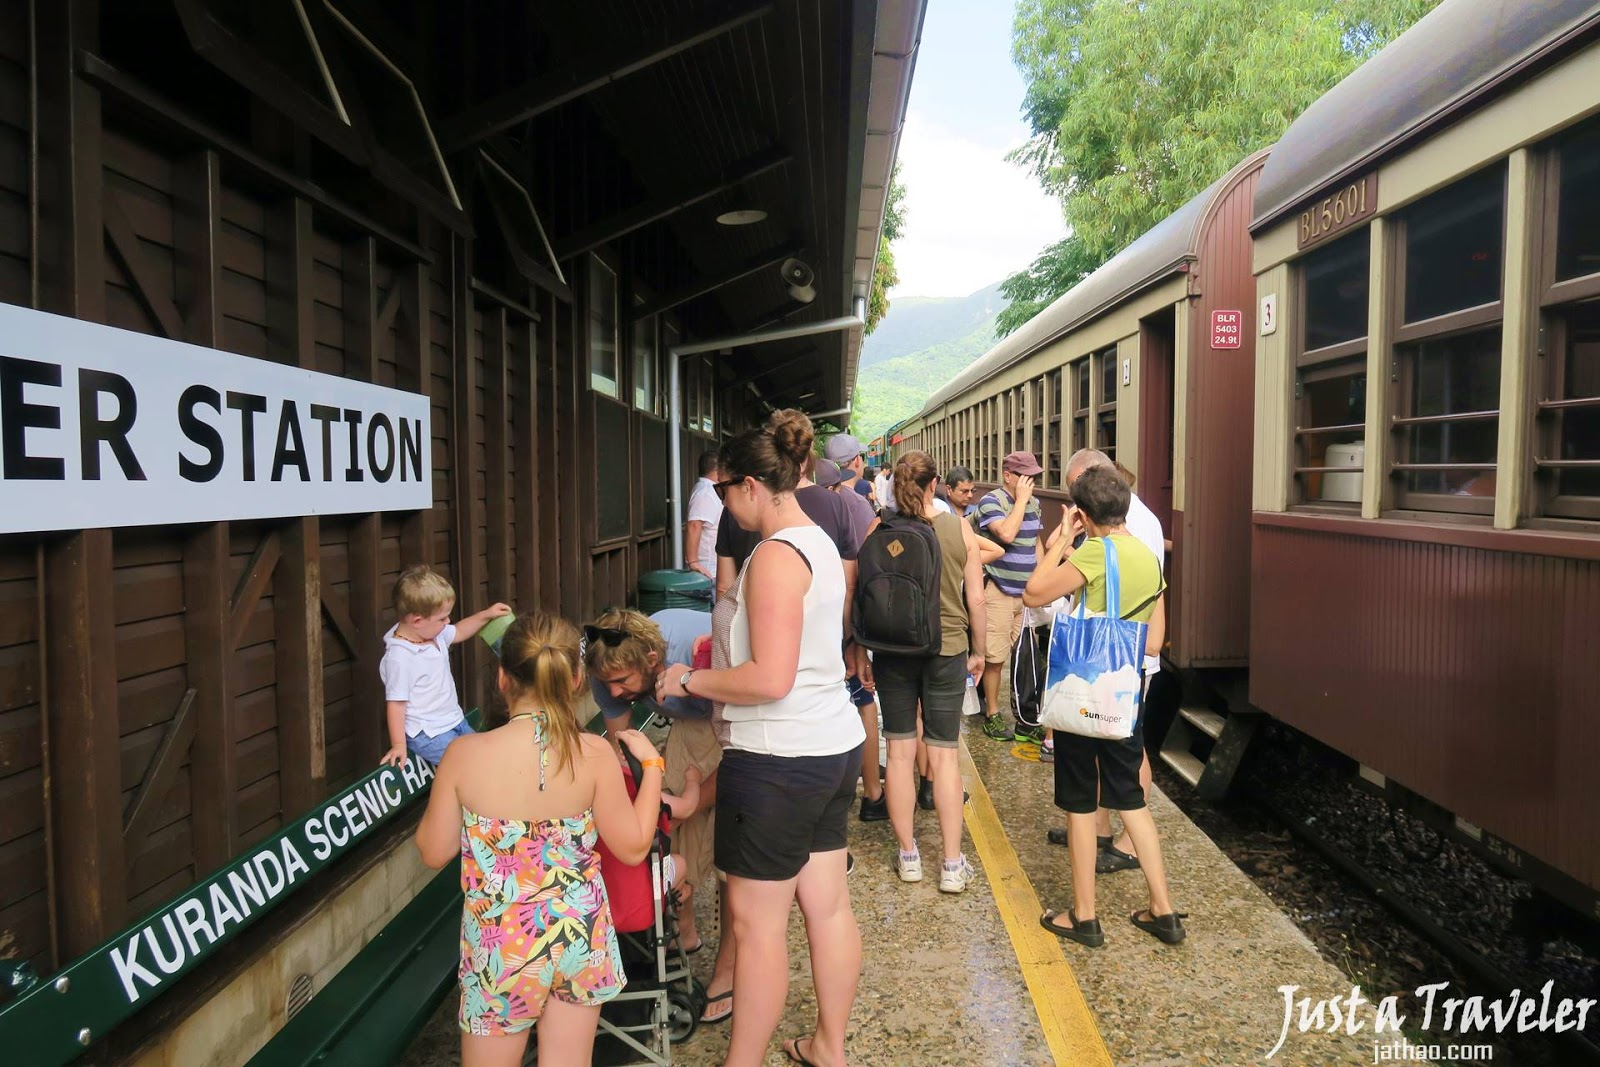 凱恩斯-庫蘭達-交通-觀光火車-自由行-旅遊-澳洲-Cairns-Kuranda-Scenic-Railway-Travel-Tourist-Attraction-Australia